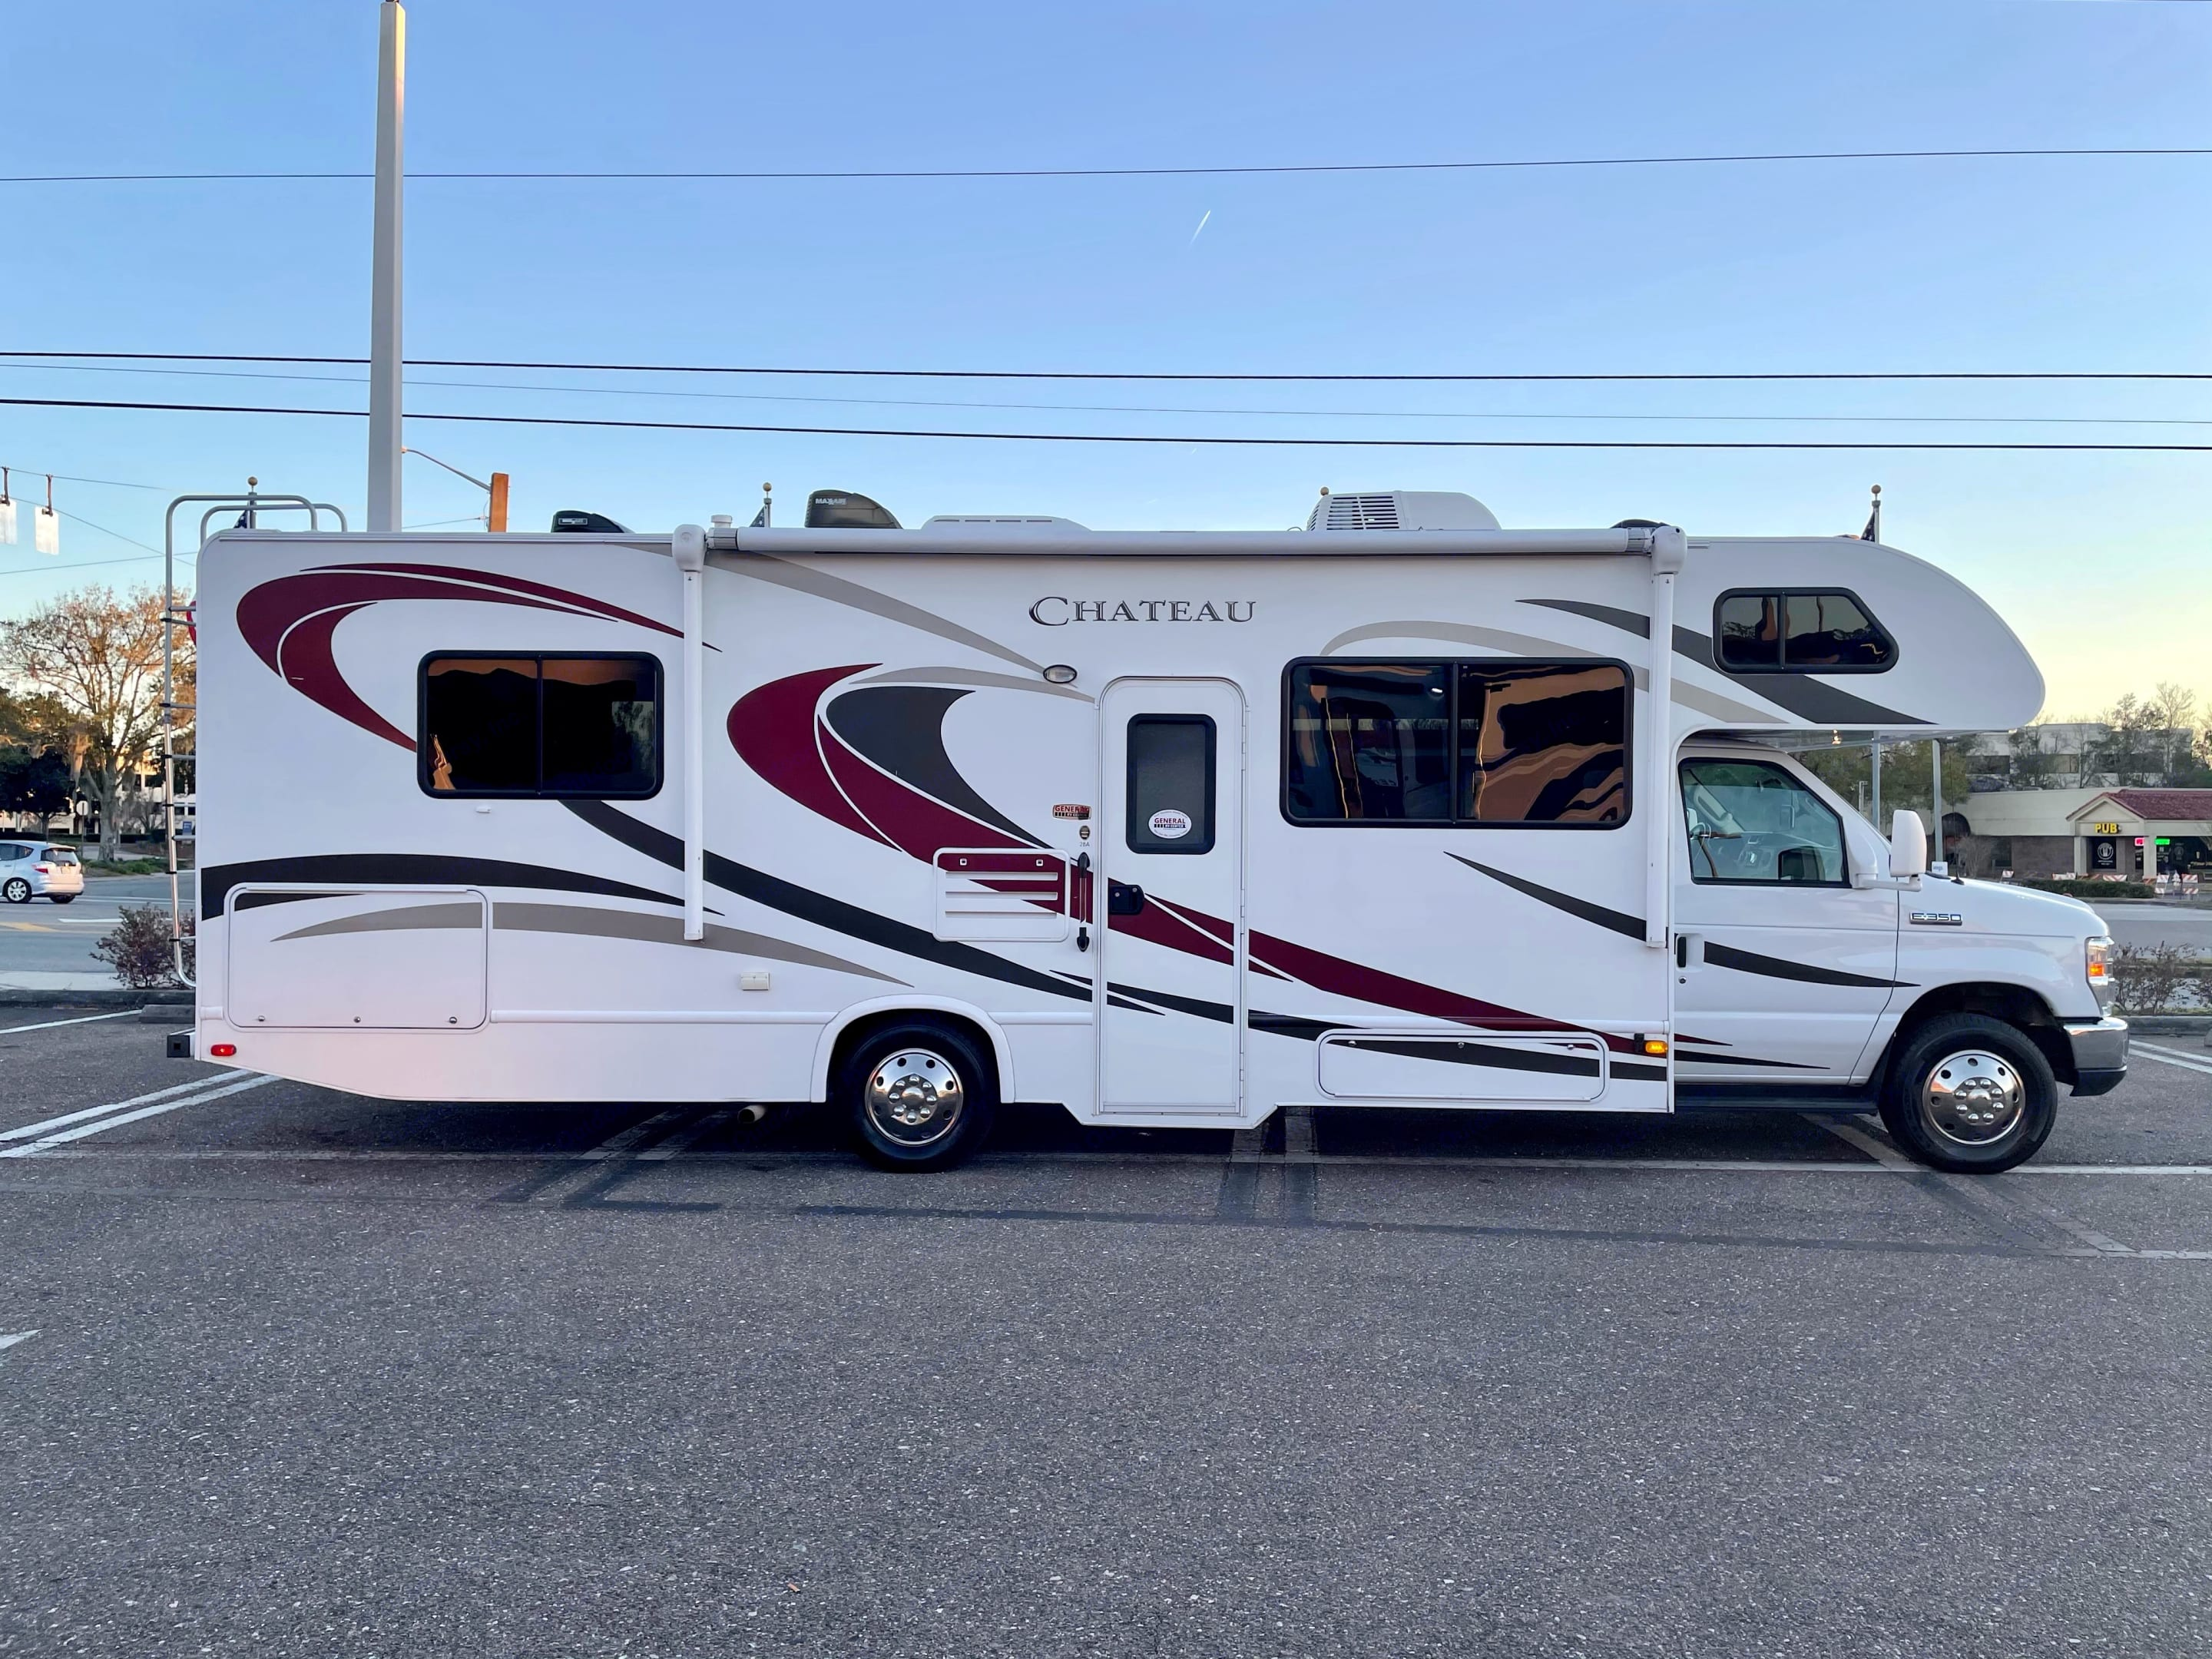 Class C RV Motor Home with the cab over bunk. . Thor Motor Coach Chateau 2016